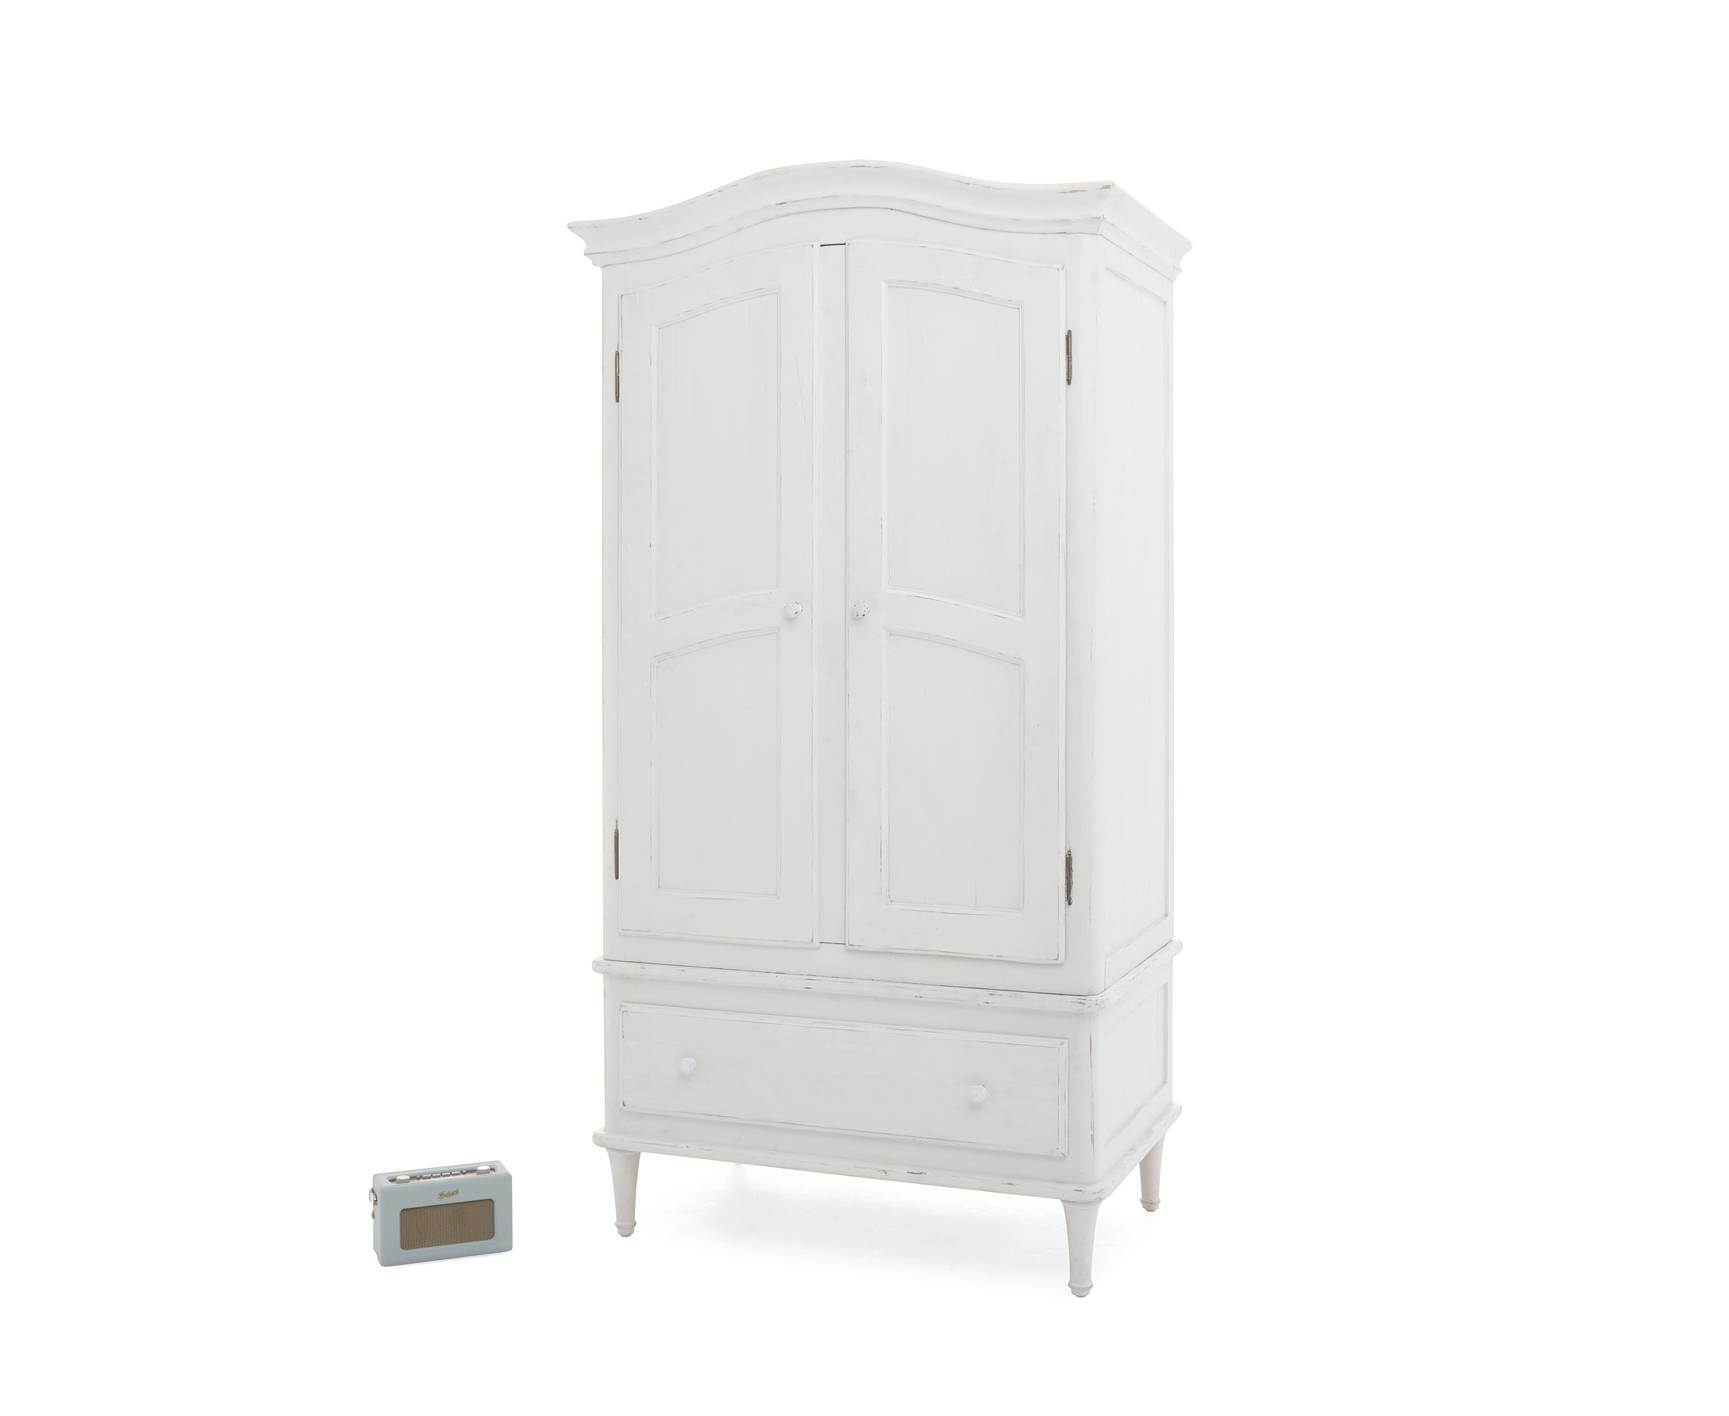 Timbers Wardrobe | White Painted Wardrobe | Loaf intended for White Painted Wardrobes (Image 11 of 15)